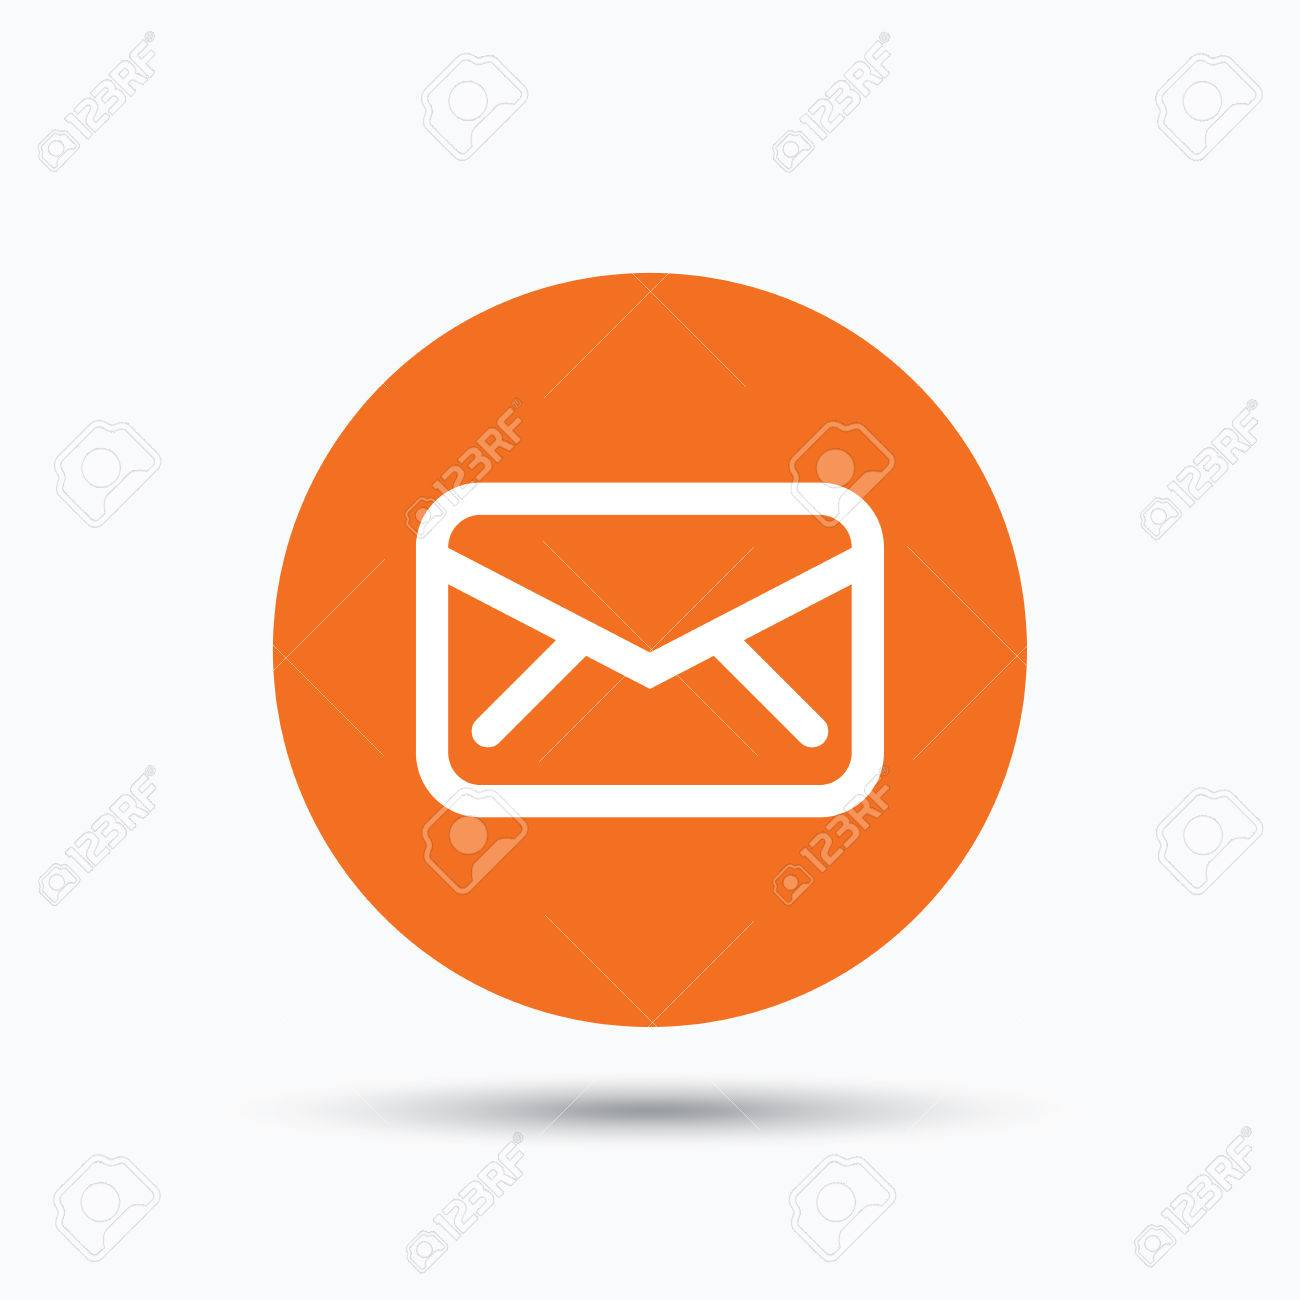 Send email message sign. Internet mailing symbol. Orange circle button with